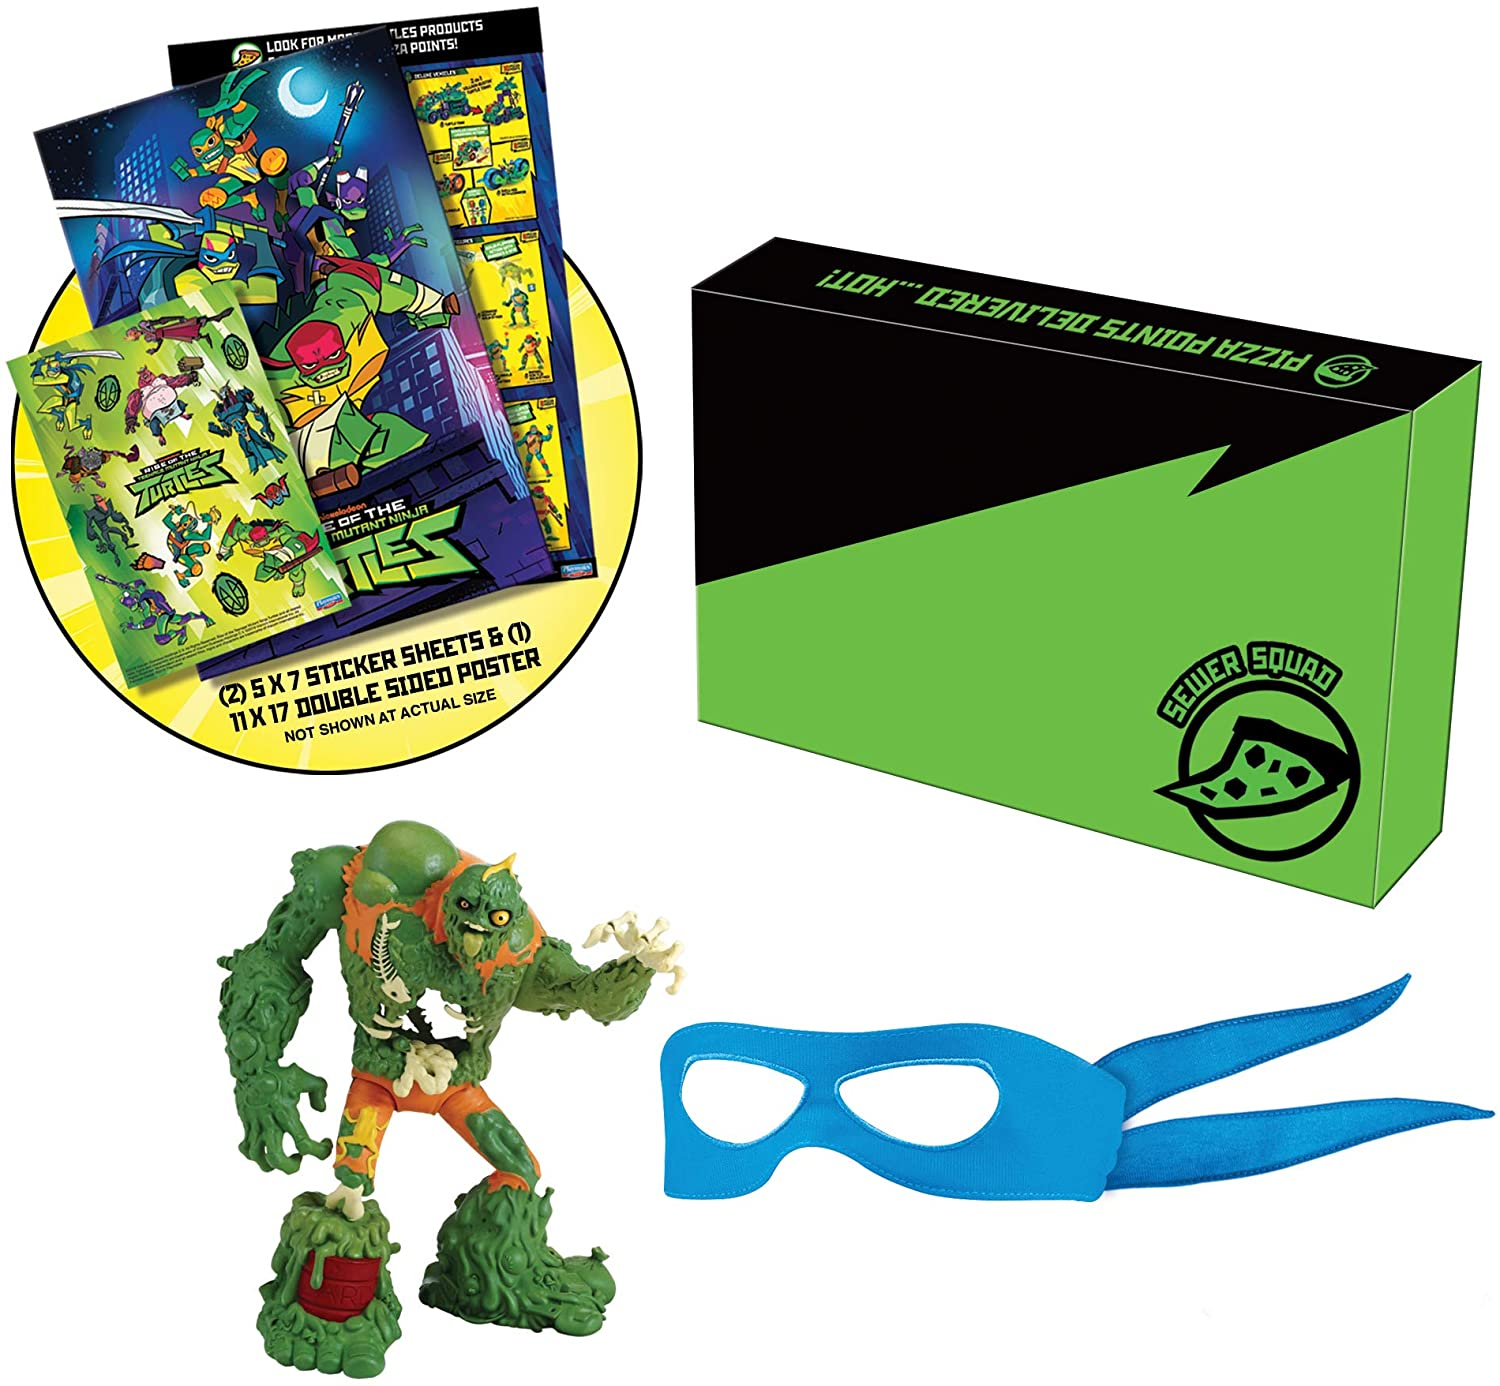 Amazon.com: Teenage Mutant Ninja Turtles TMNT - Juego de ...